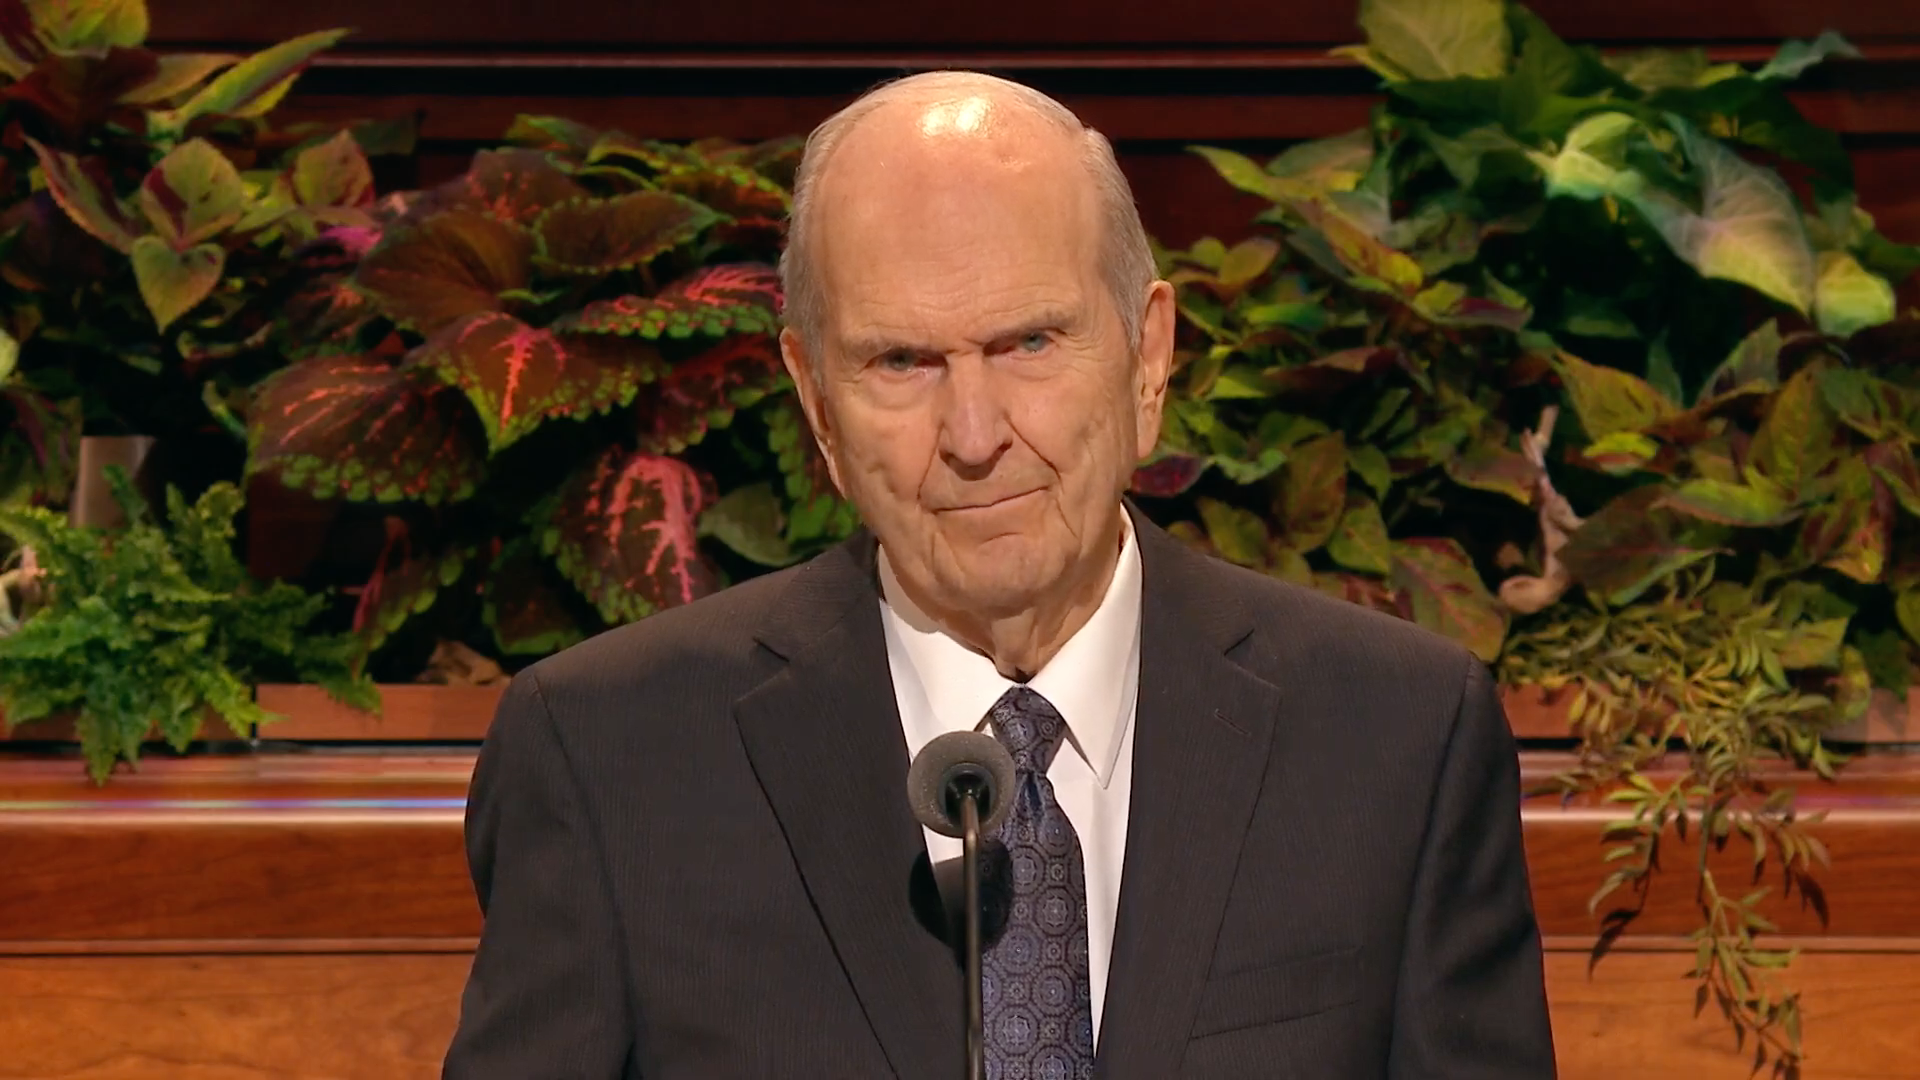 President Russell M. Nelson, president of the Church, gives closing remarks during the Sunday afternoon session in the 189th Semiannual General Conference of the Church on Sunday, Oct. 6, 2019.